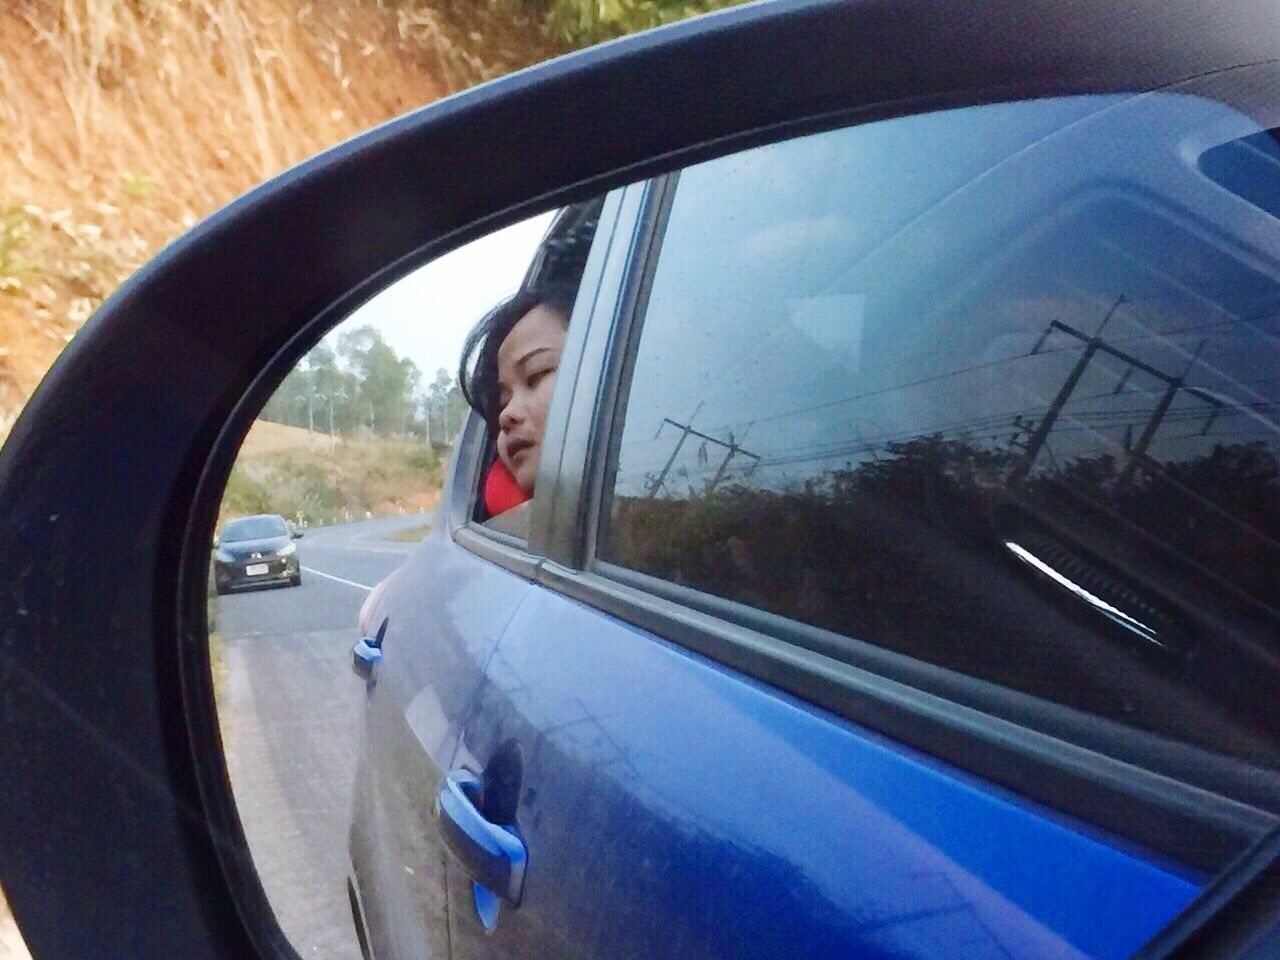 Reflection Of Woman Sitting In Car At Side-View Mirror